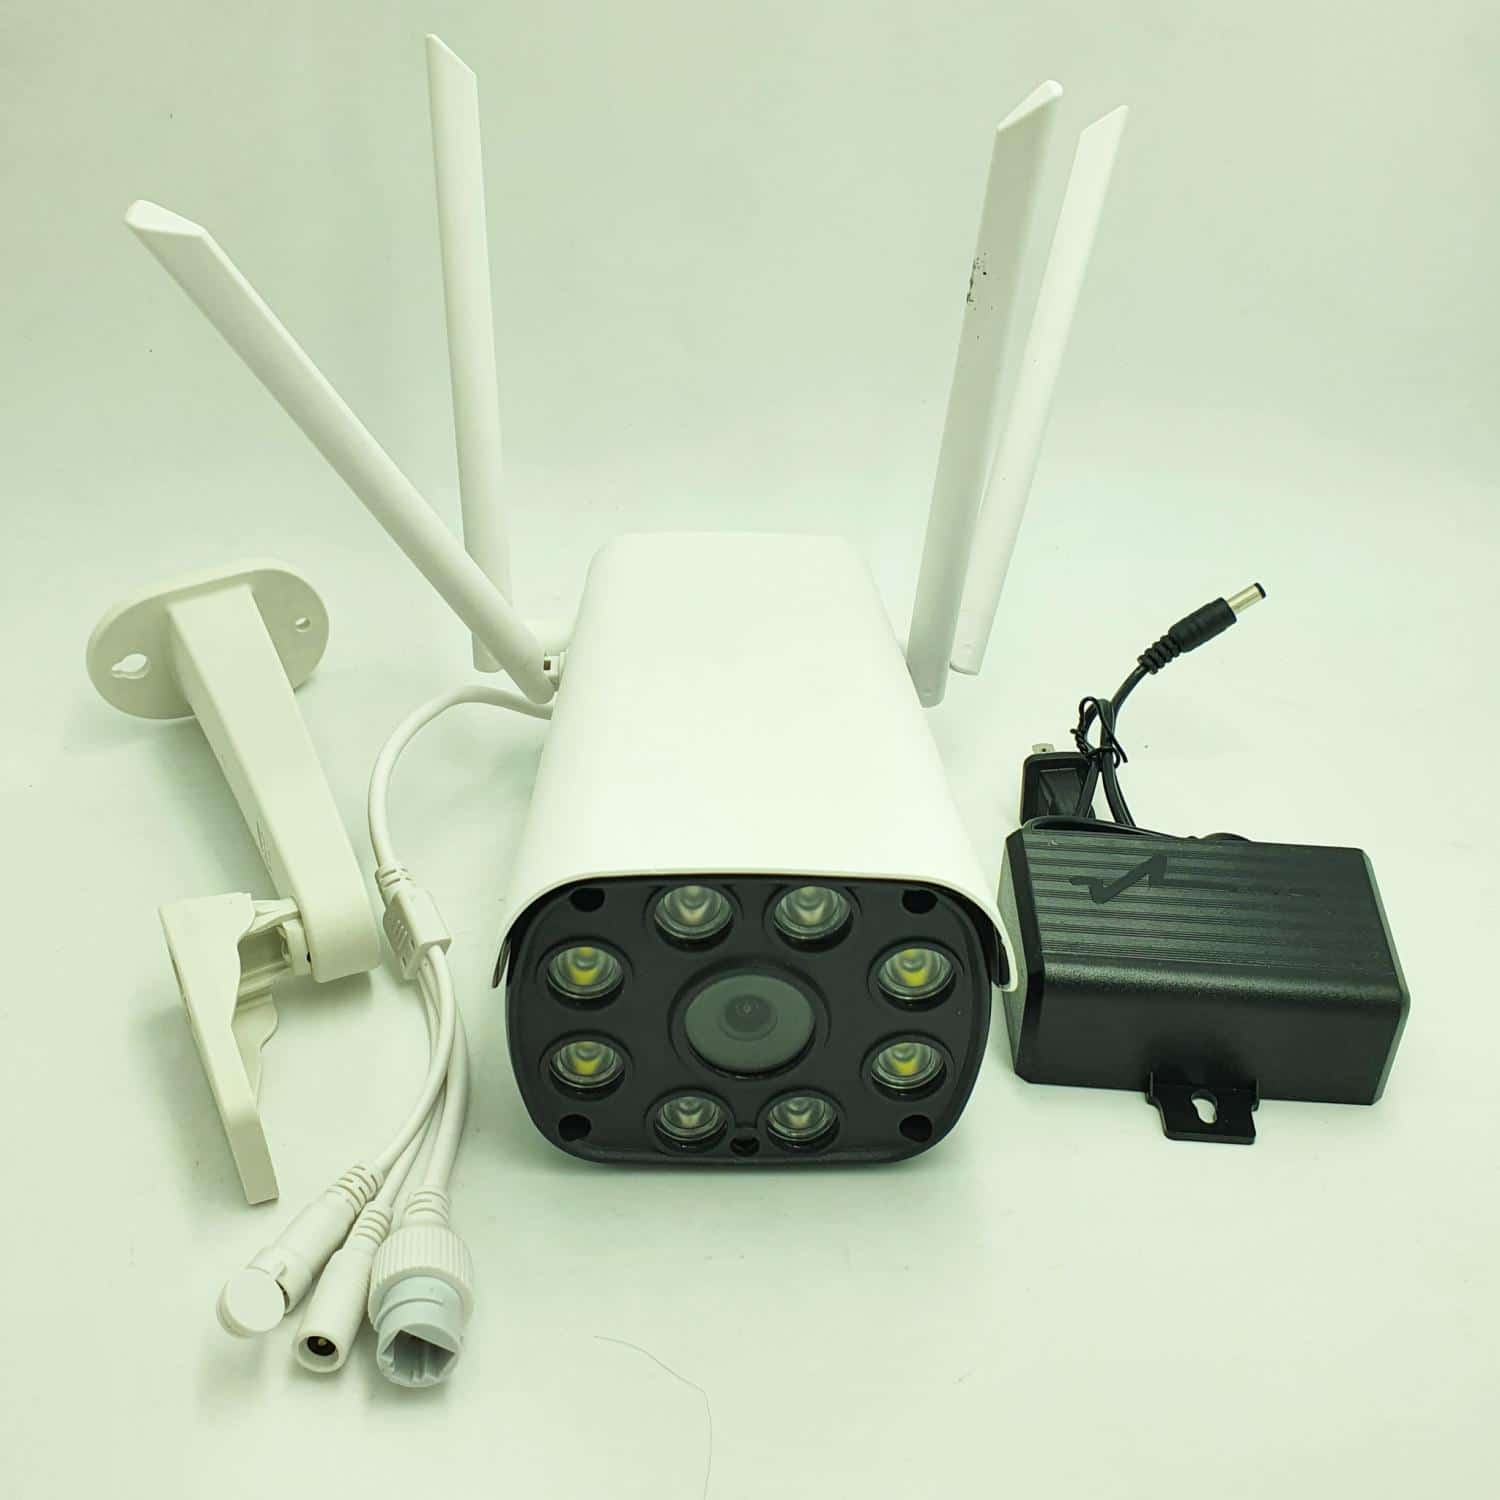 Wireless Security Camera System front view